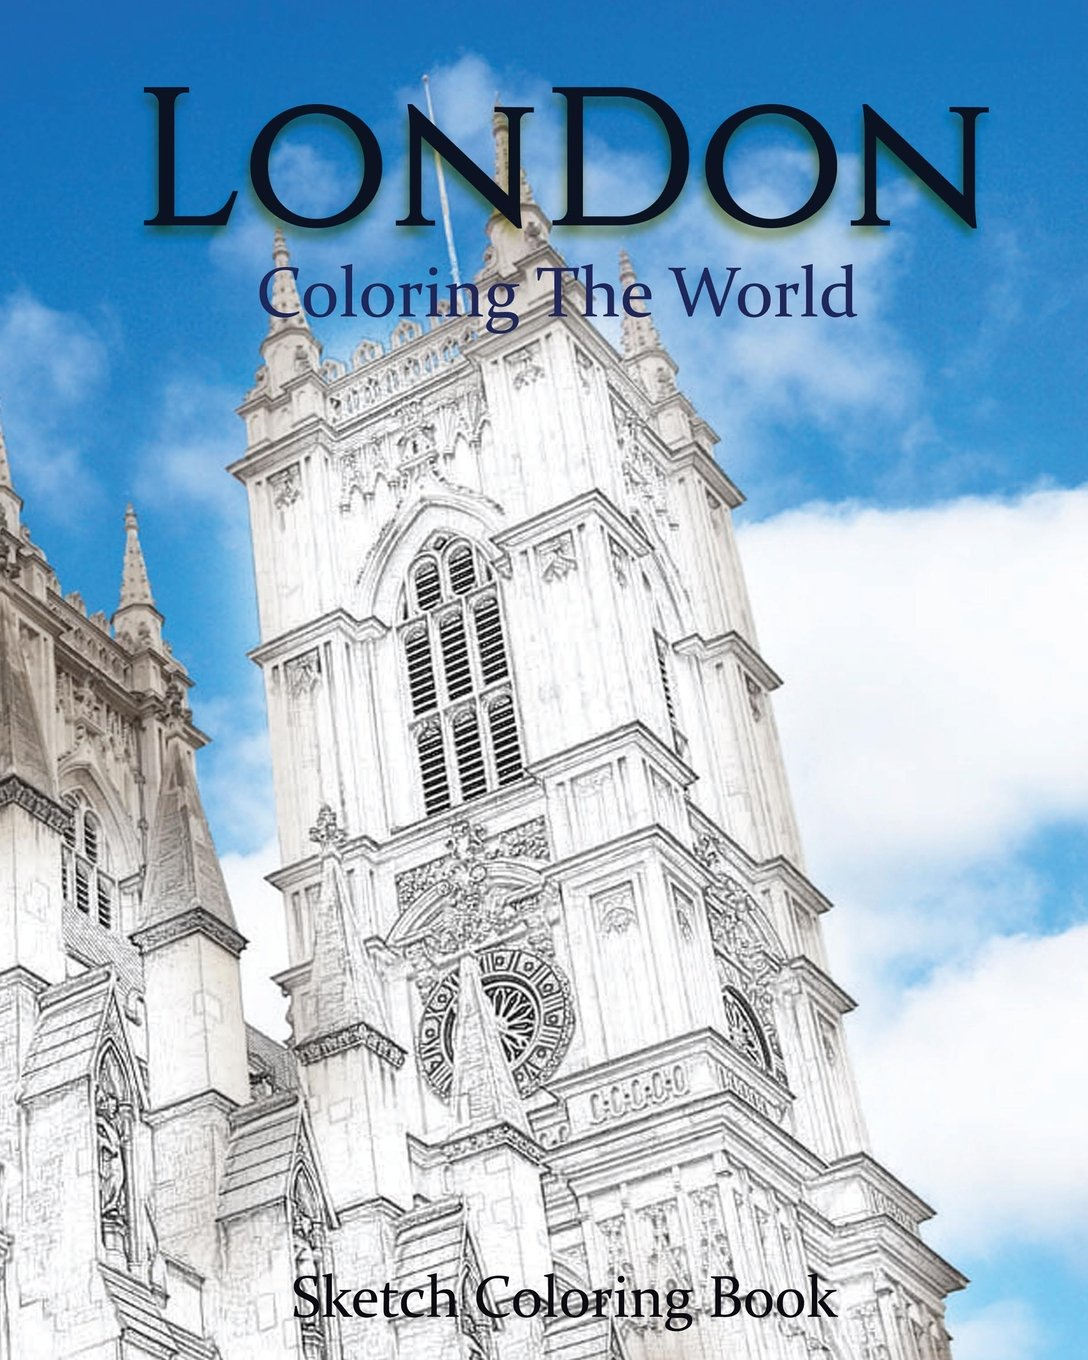 London Coloring The World Sketch Book Anthony Hutzler 9781535413459 Amazon Books